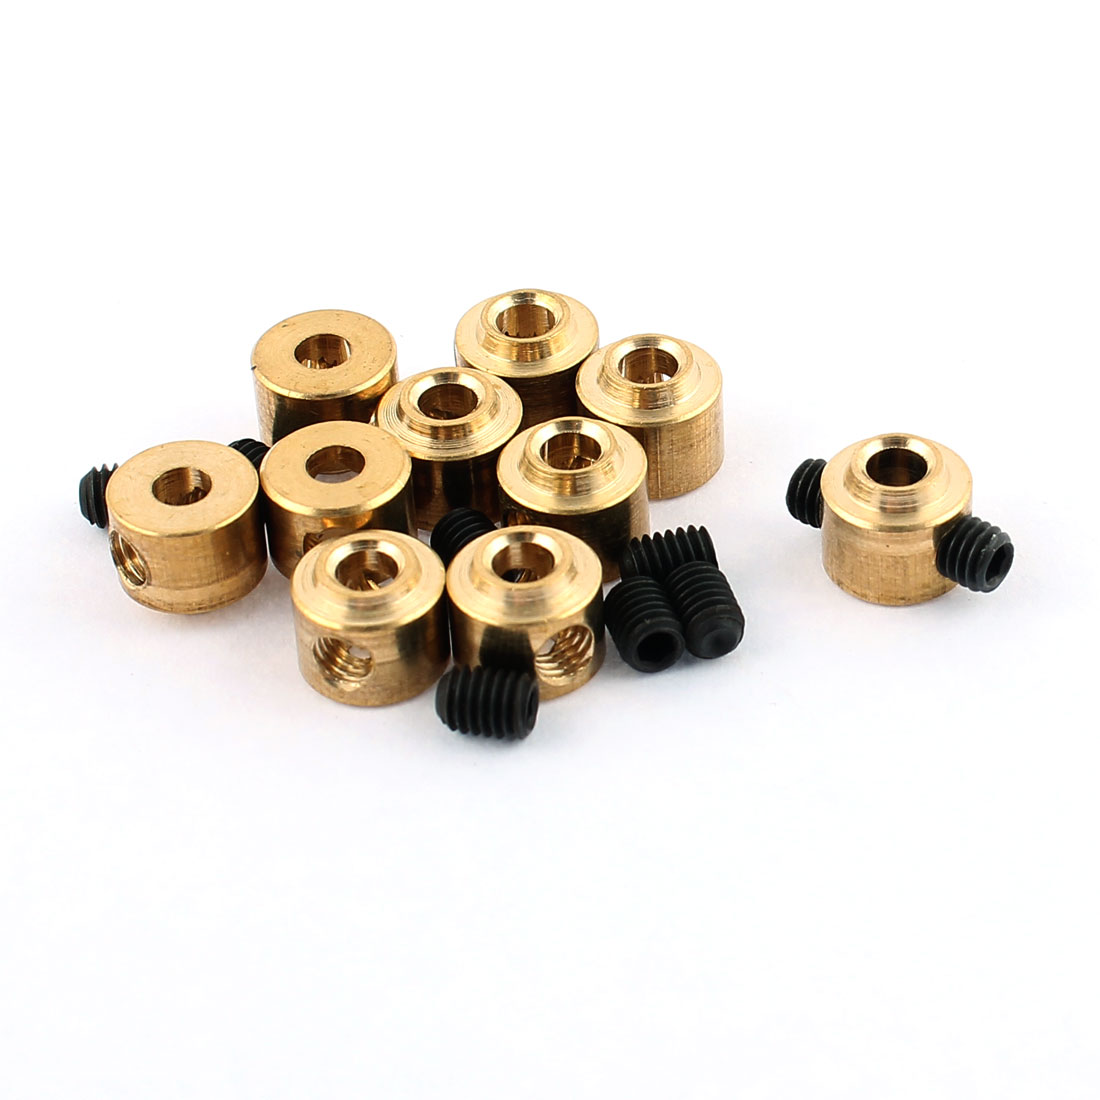 10 Pcs RC Airplane Landing Gear Wheel Collars 2.5mm Inner Dia 6.5x5.5mm w Screw